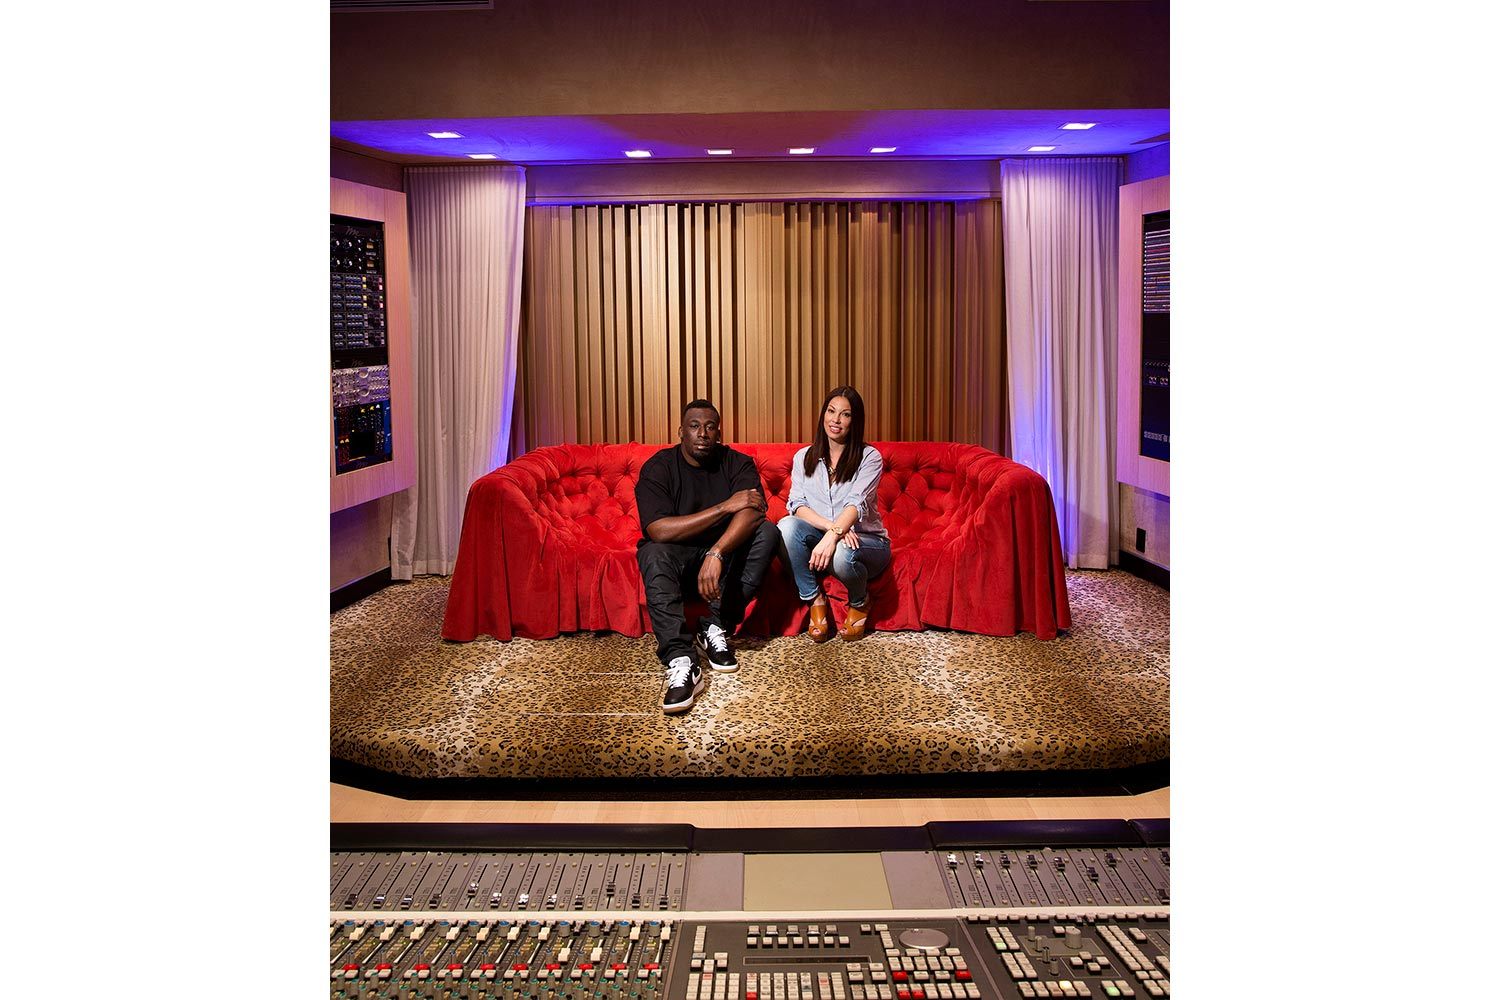 Two of the contemporary music scene's most prolific hit producers and mixing engineer, Nate 'Danja' Hills and Marcella Araica have added a cutting edge, WSDG recording studio to their N.A.R.S. (New Age Rock Stars) label. Danja and Marcella Araica for MIX.